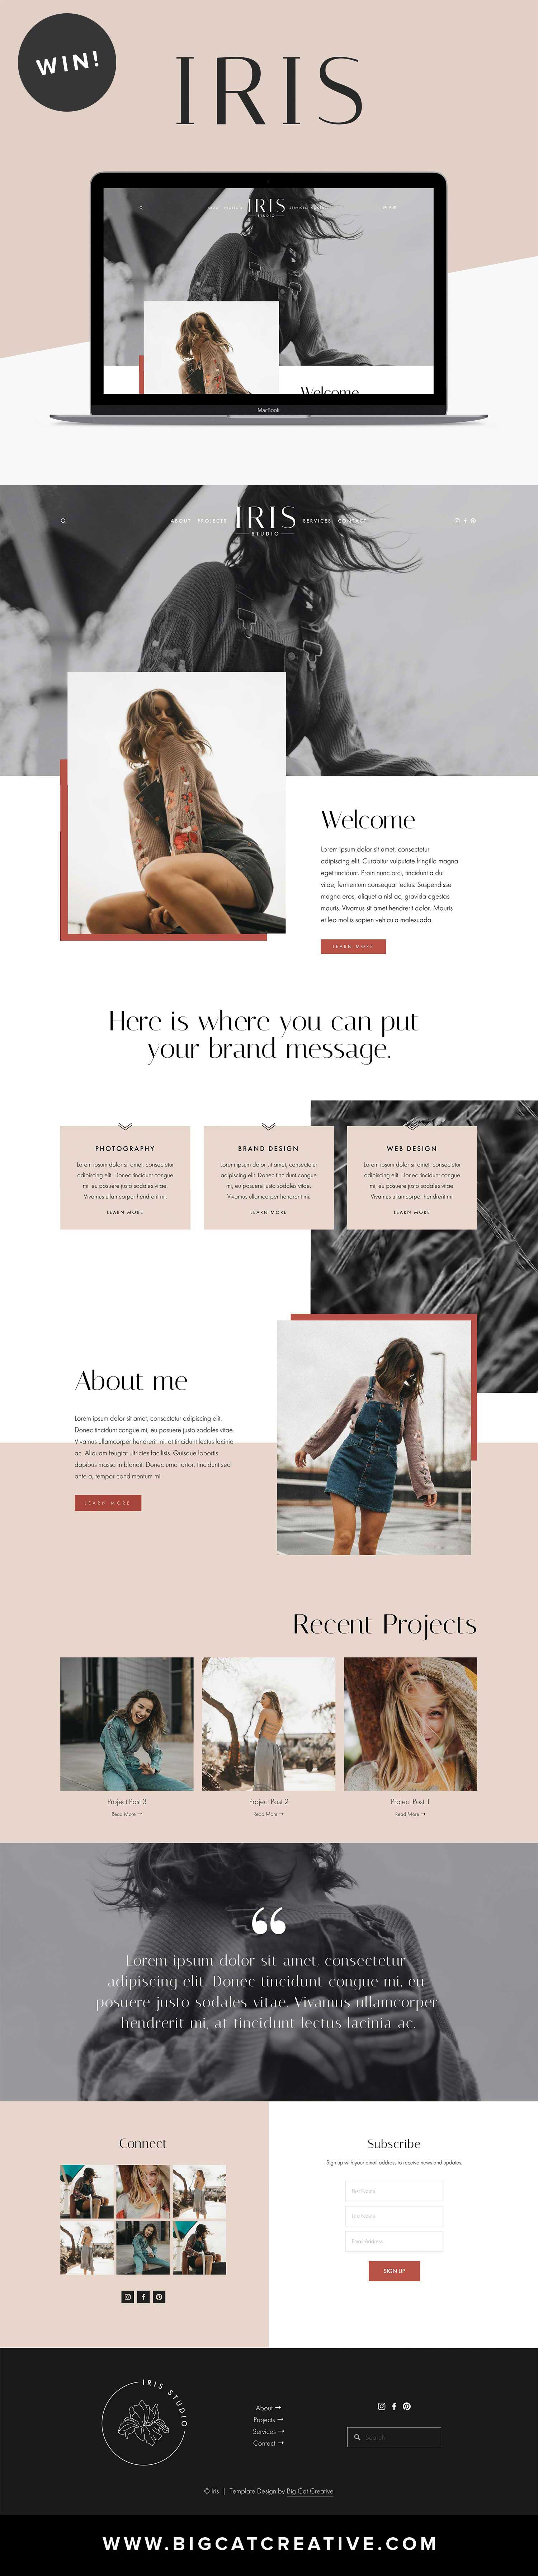 Iris Squarespace Template Kit by Big Cat Creative